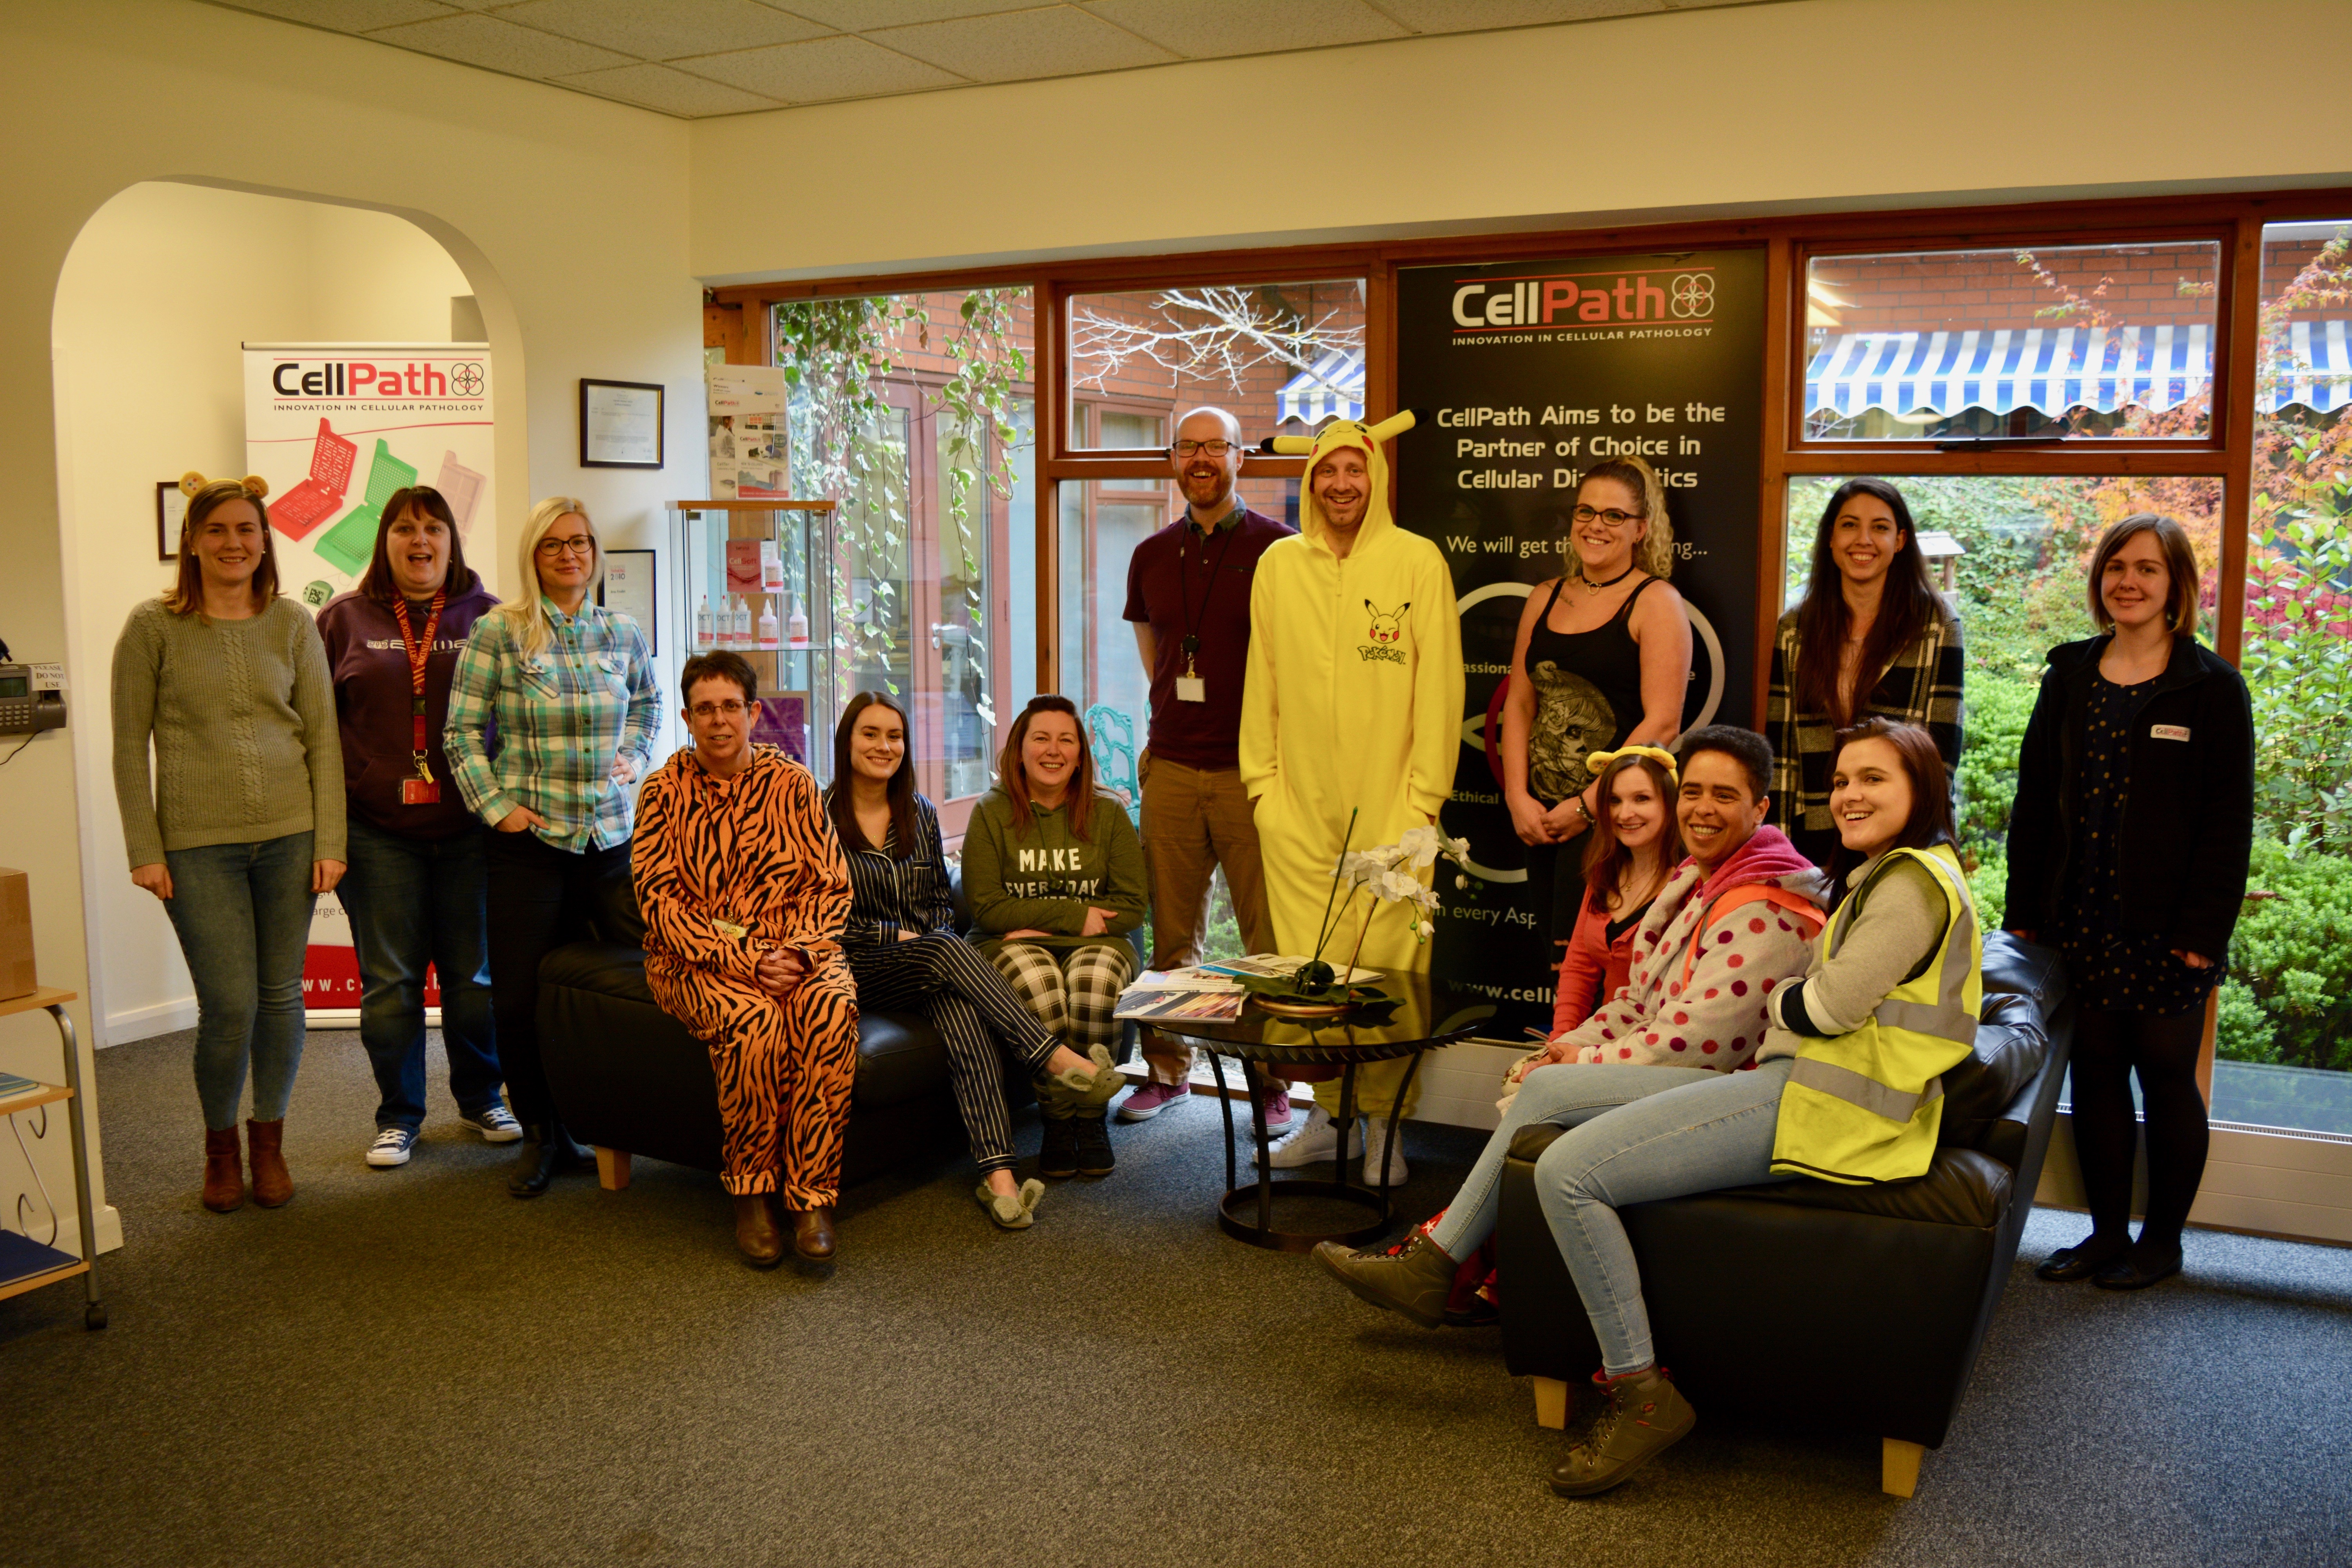 CellPath supports BBC Children in Need 2017